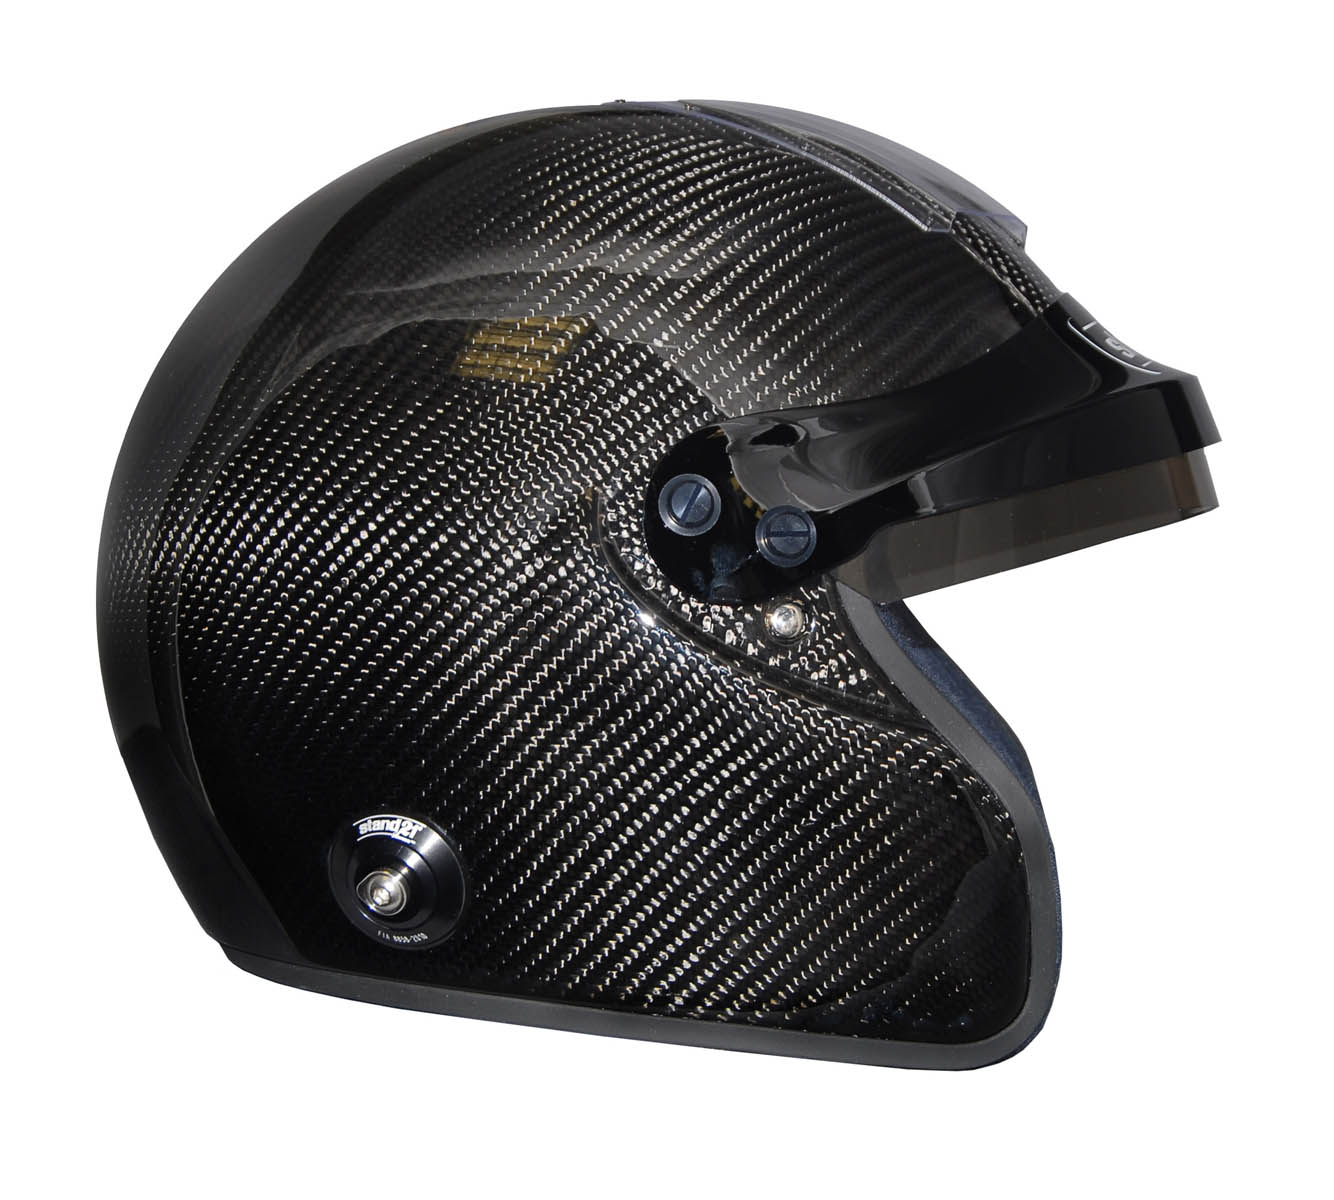 Stock IVOS Open Face Double Duty helmet with peakStock IVOS Open Face Double Duty helmet with peak